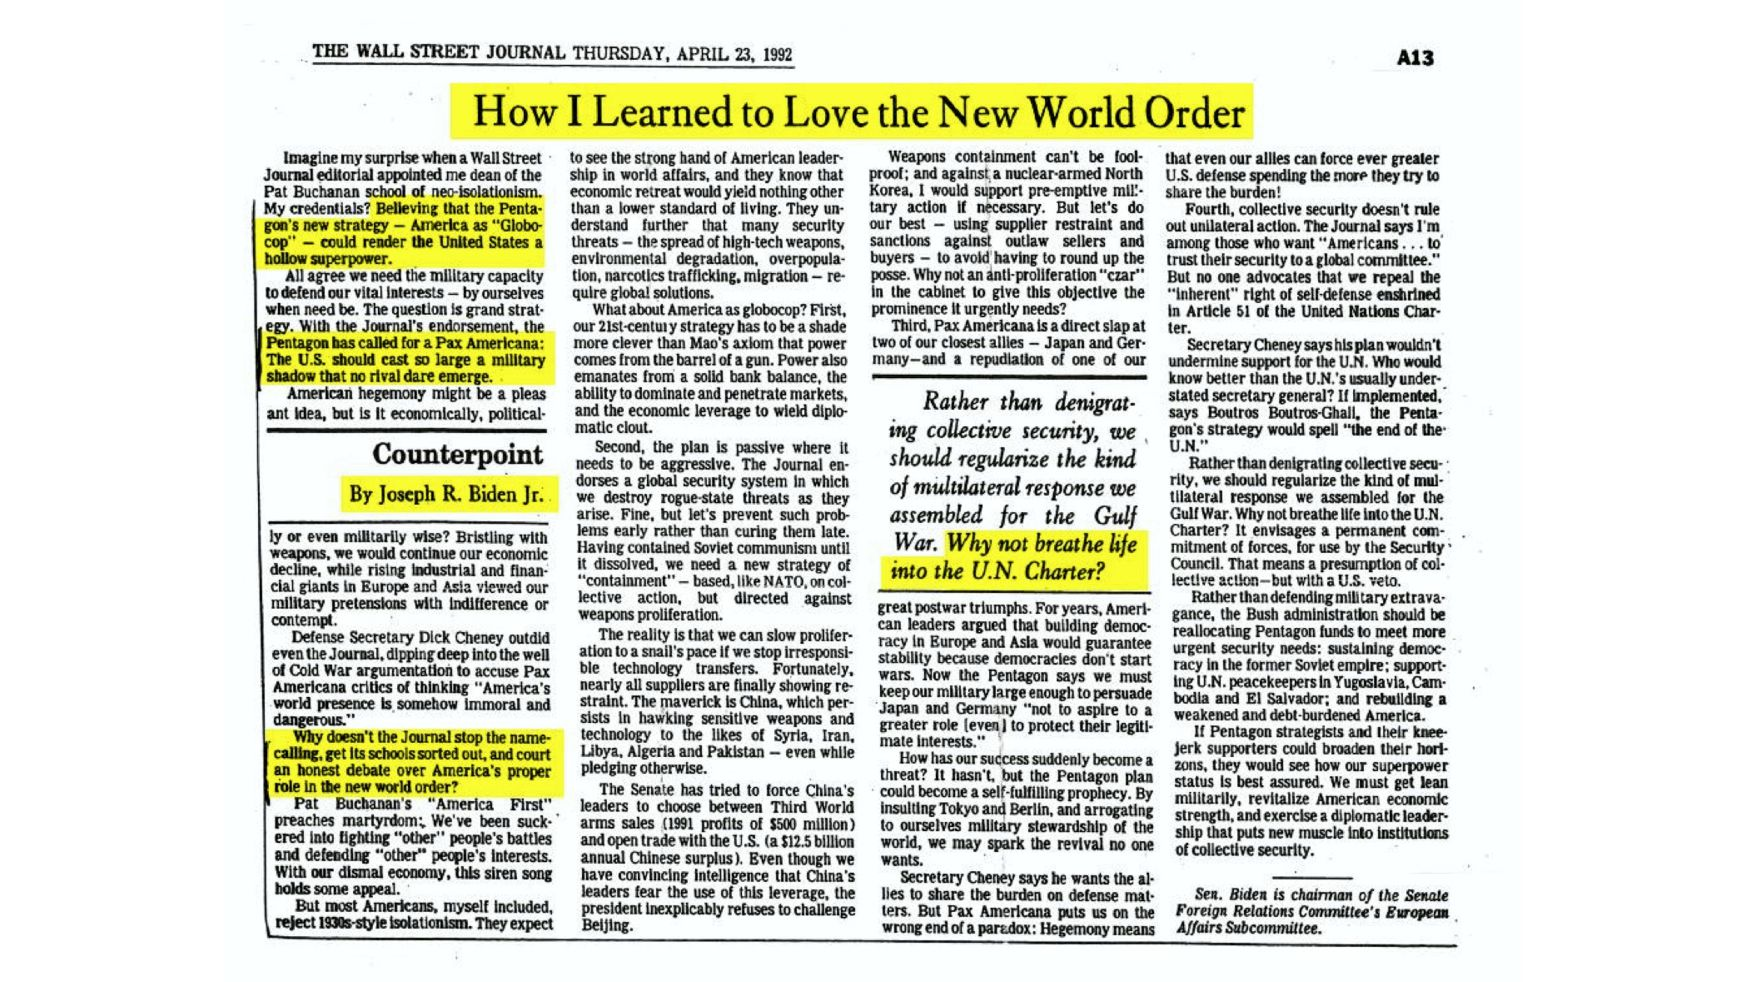 How Biden Learned to Love the New world Order